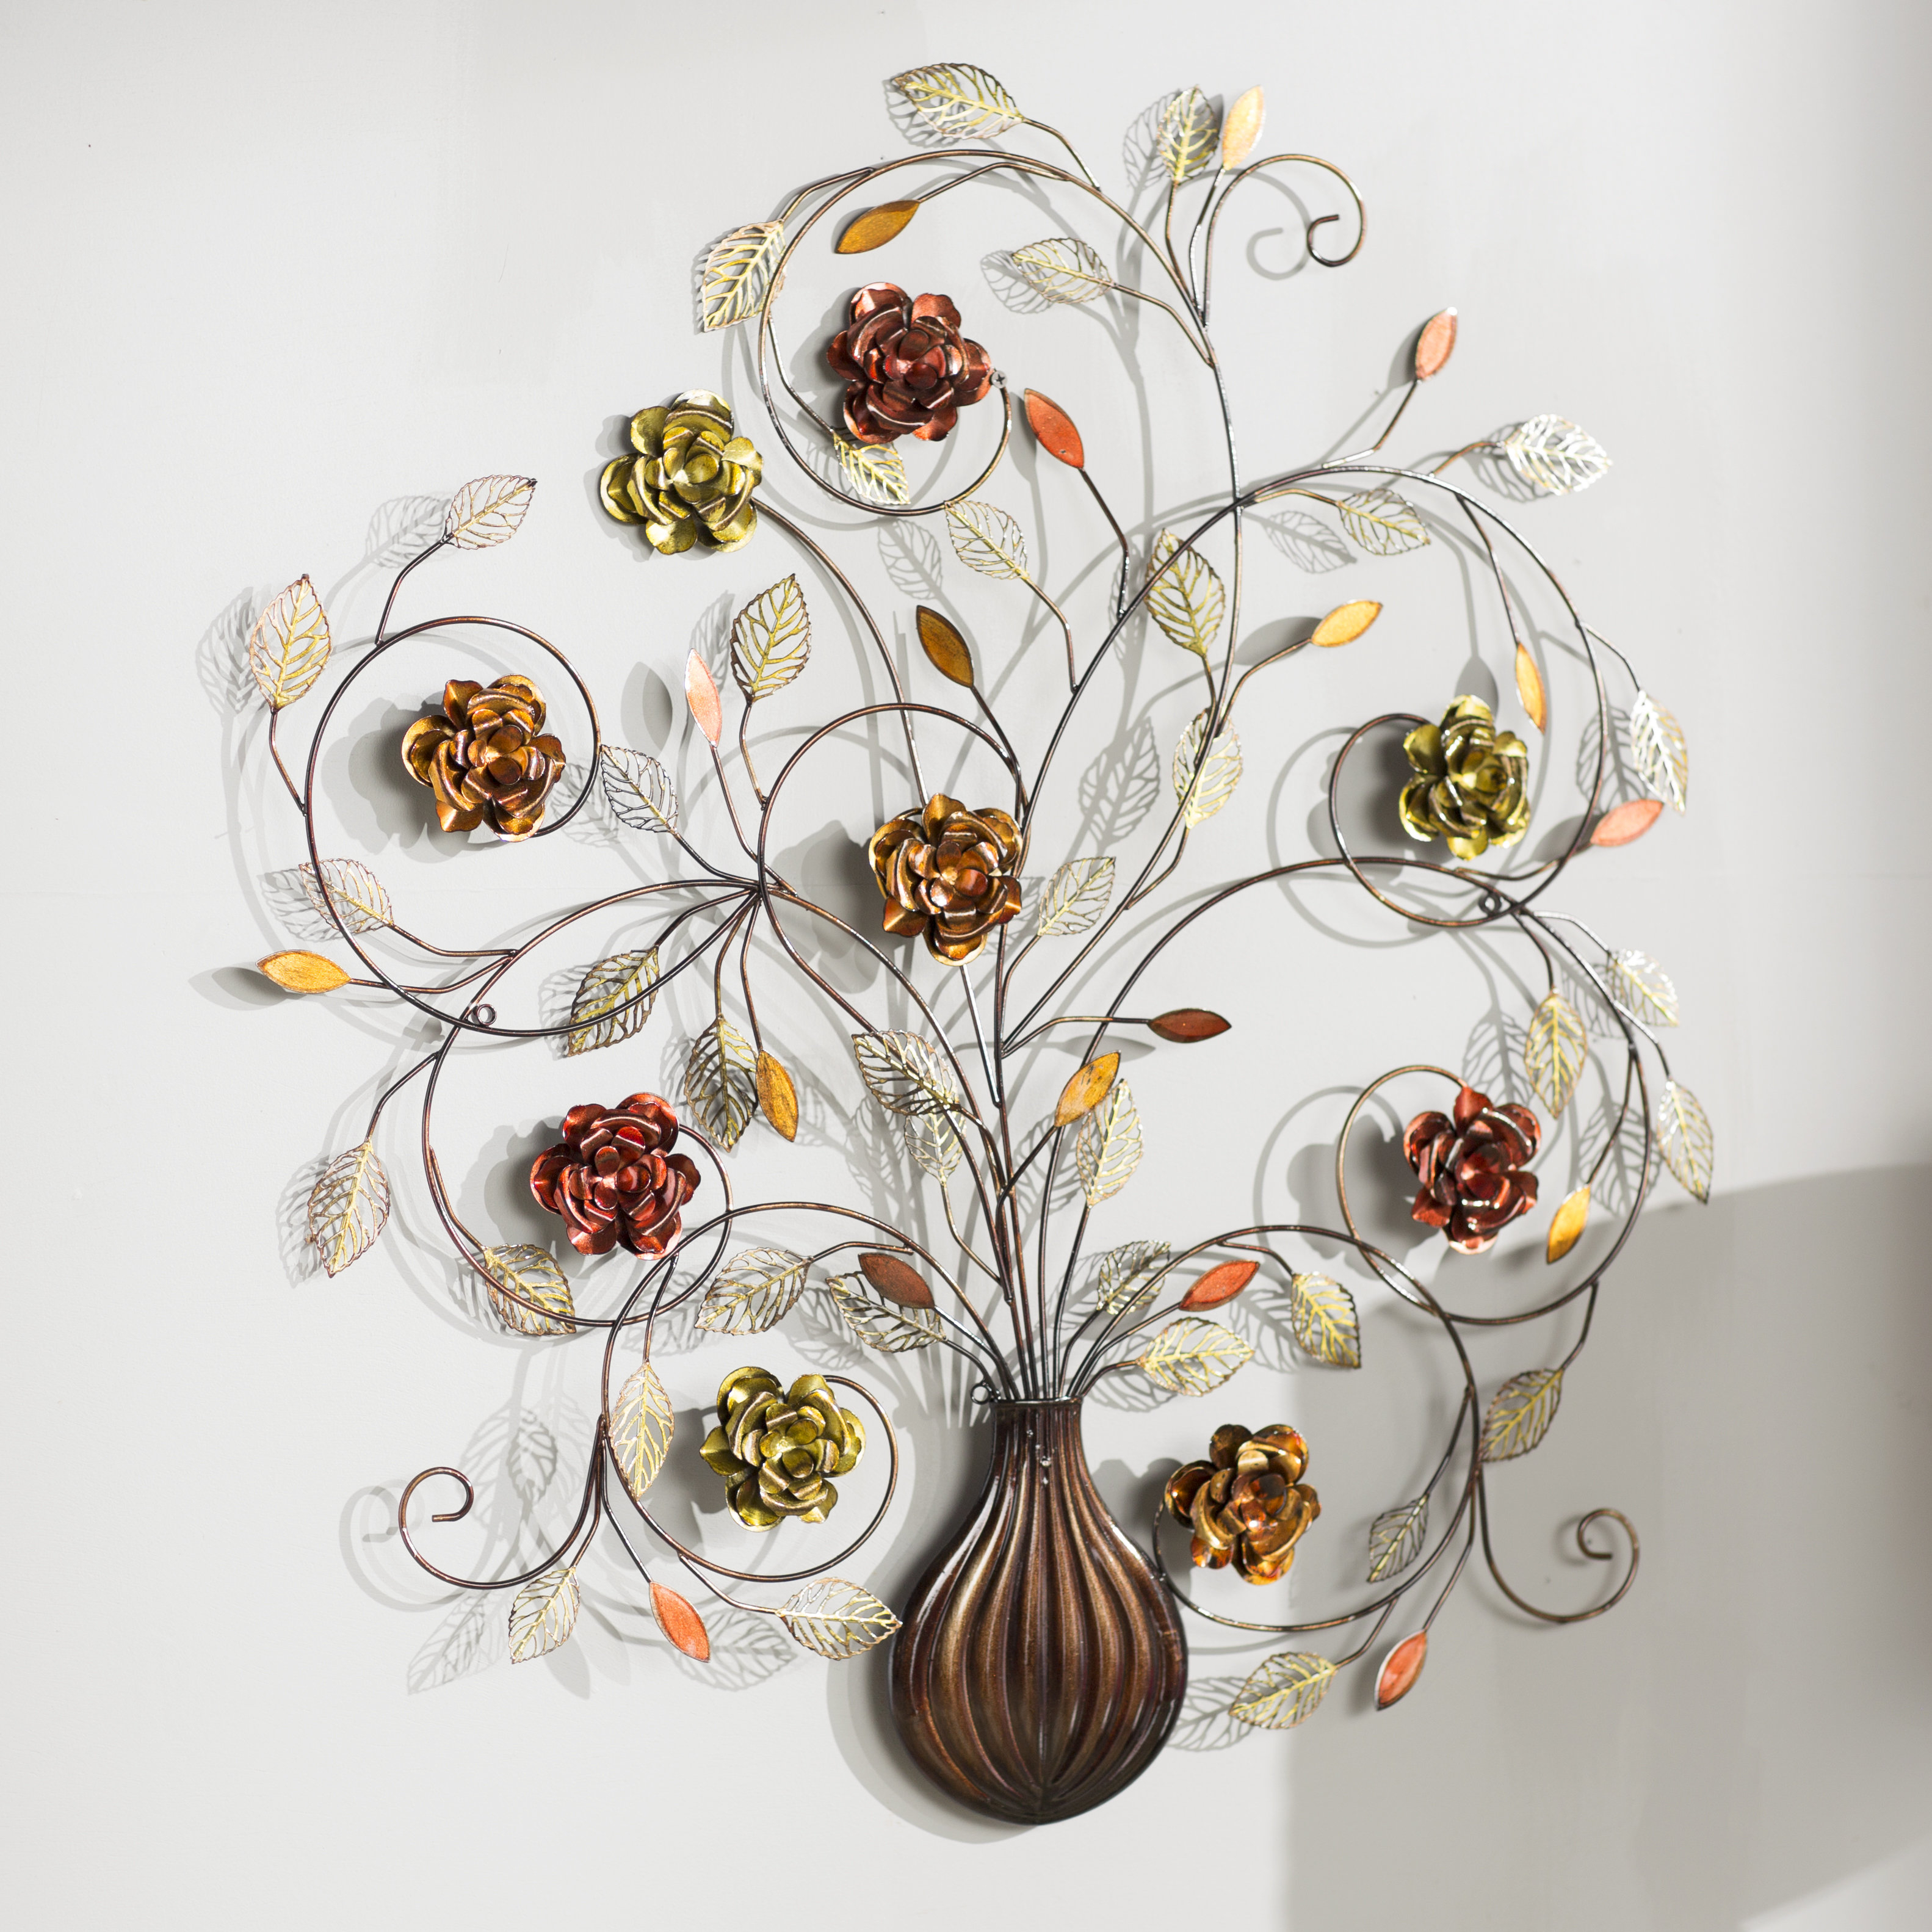 Alcott Hill Raheem Flowers Metal Wall Décor & Reviews Intended For Scattered Metal Italian Plates Wall Decor (View 2 of 30)